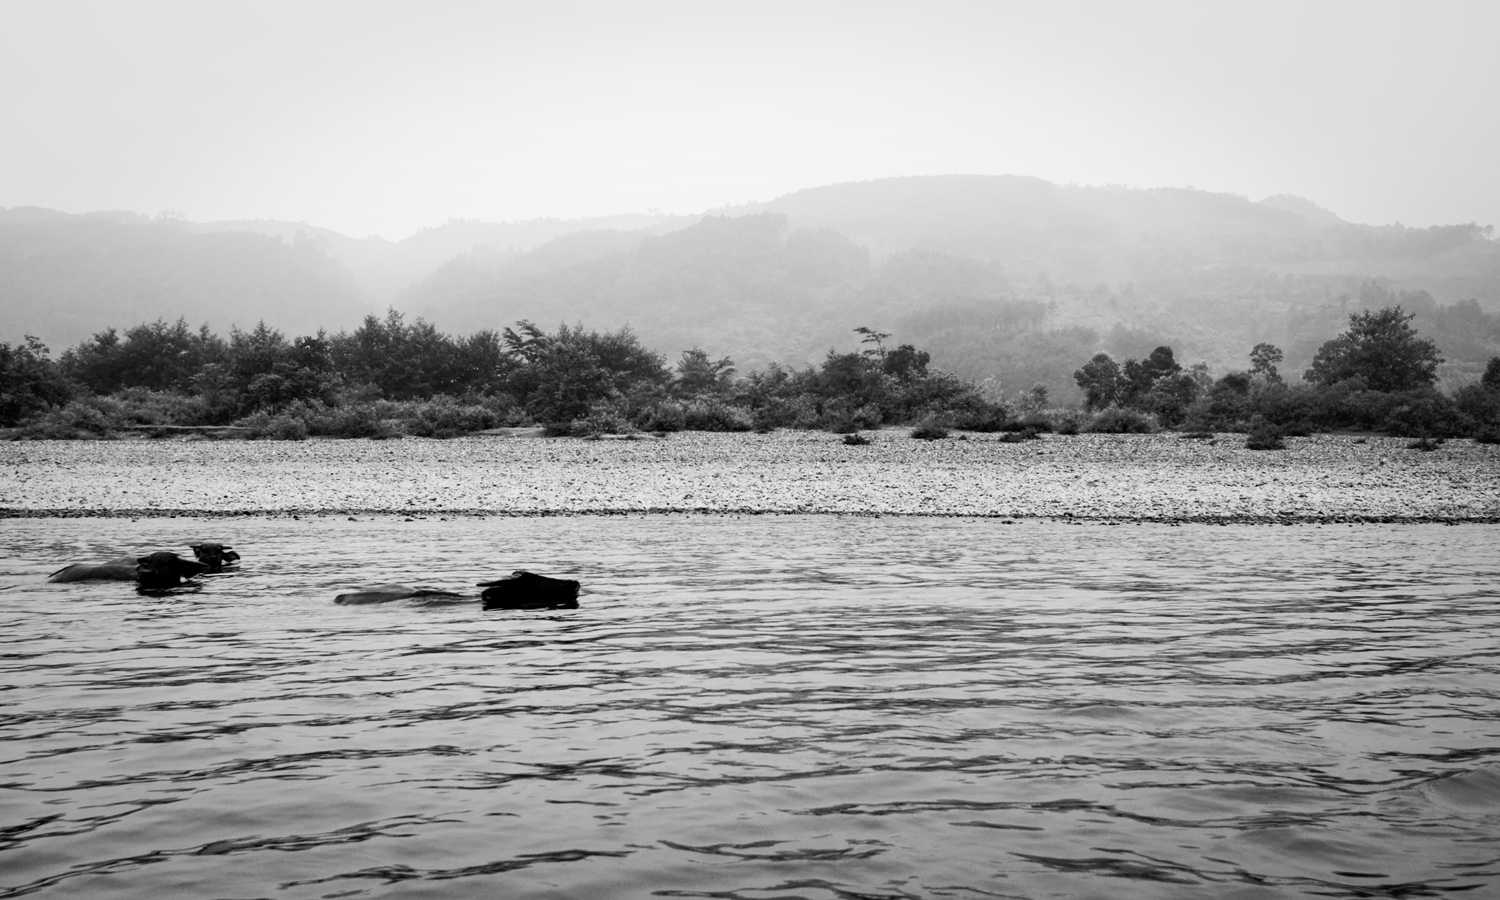 picture of two buffalos swimming in the li river in black and white, guilin, china